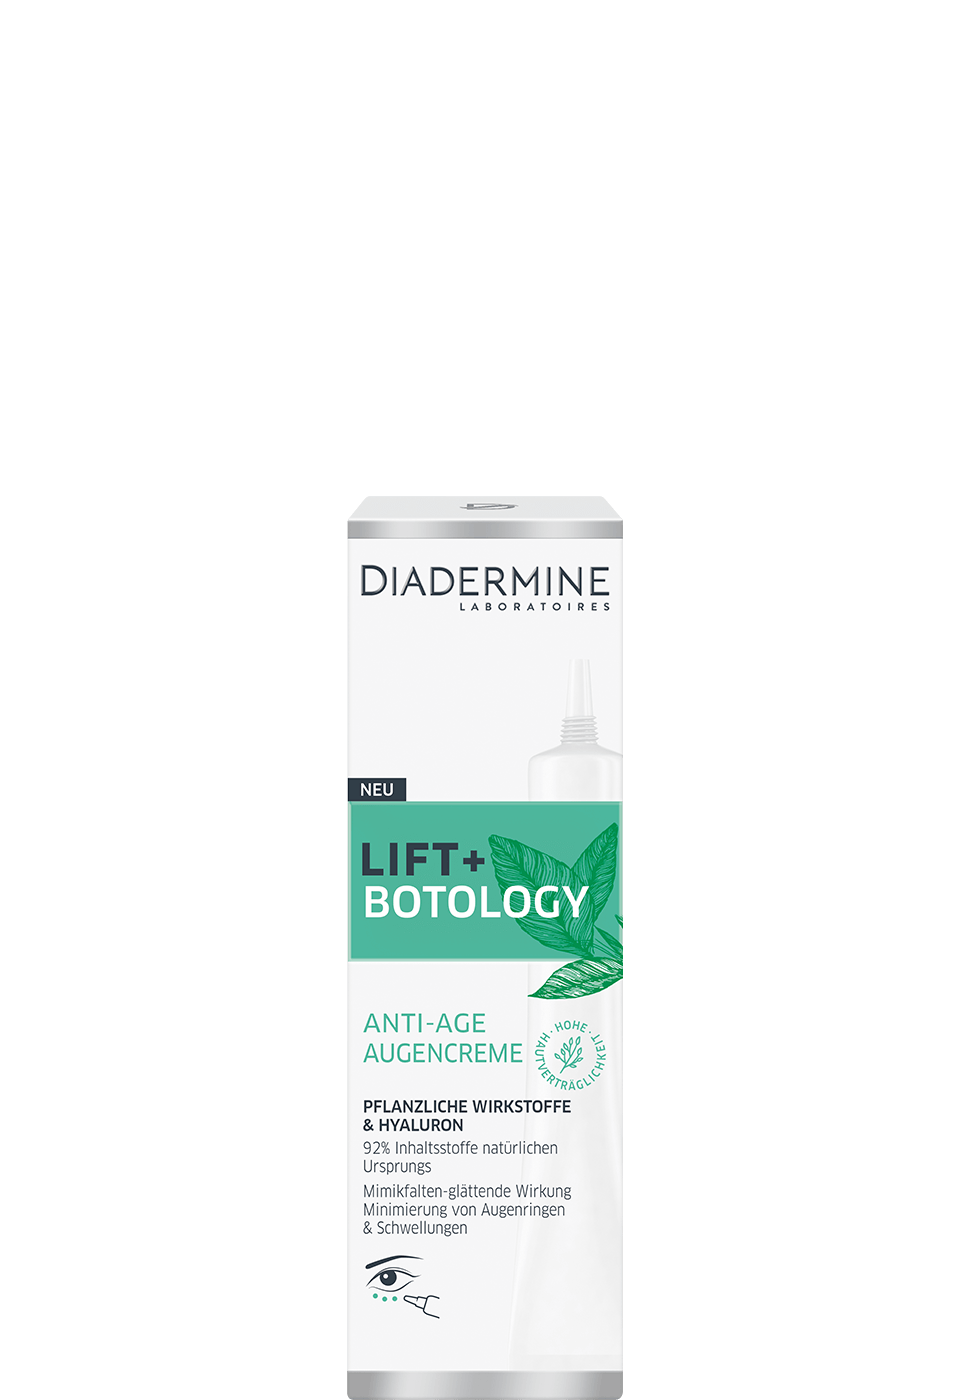 diaatrmine_at_lift_plus_botology_augencreme_970x1400